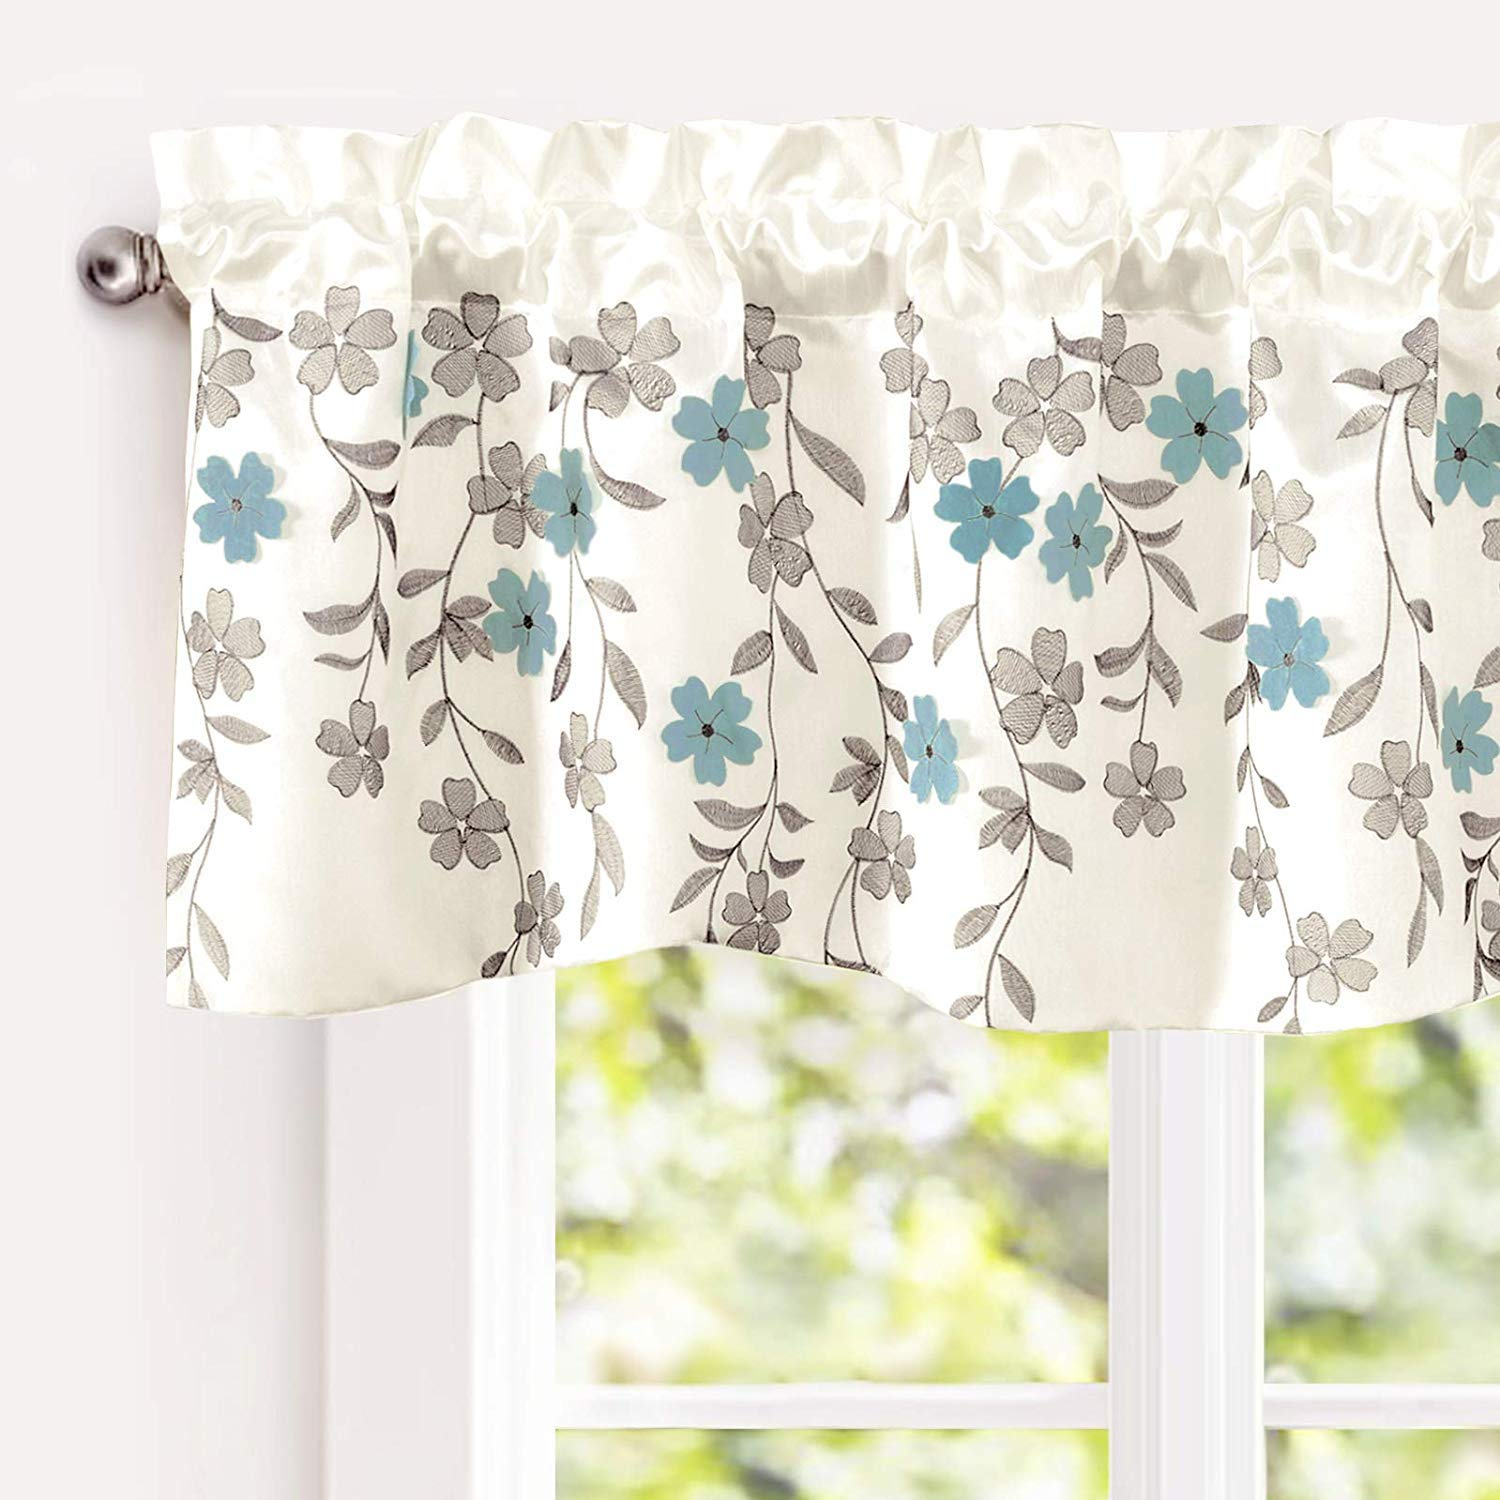 blue kitchen curtains amazon com rh amazon com Modern Kitchen Curtains in Turquoise Blue Country Chic Kitchen